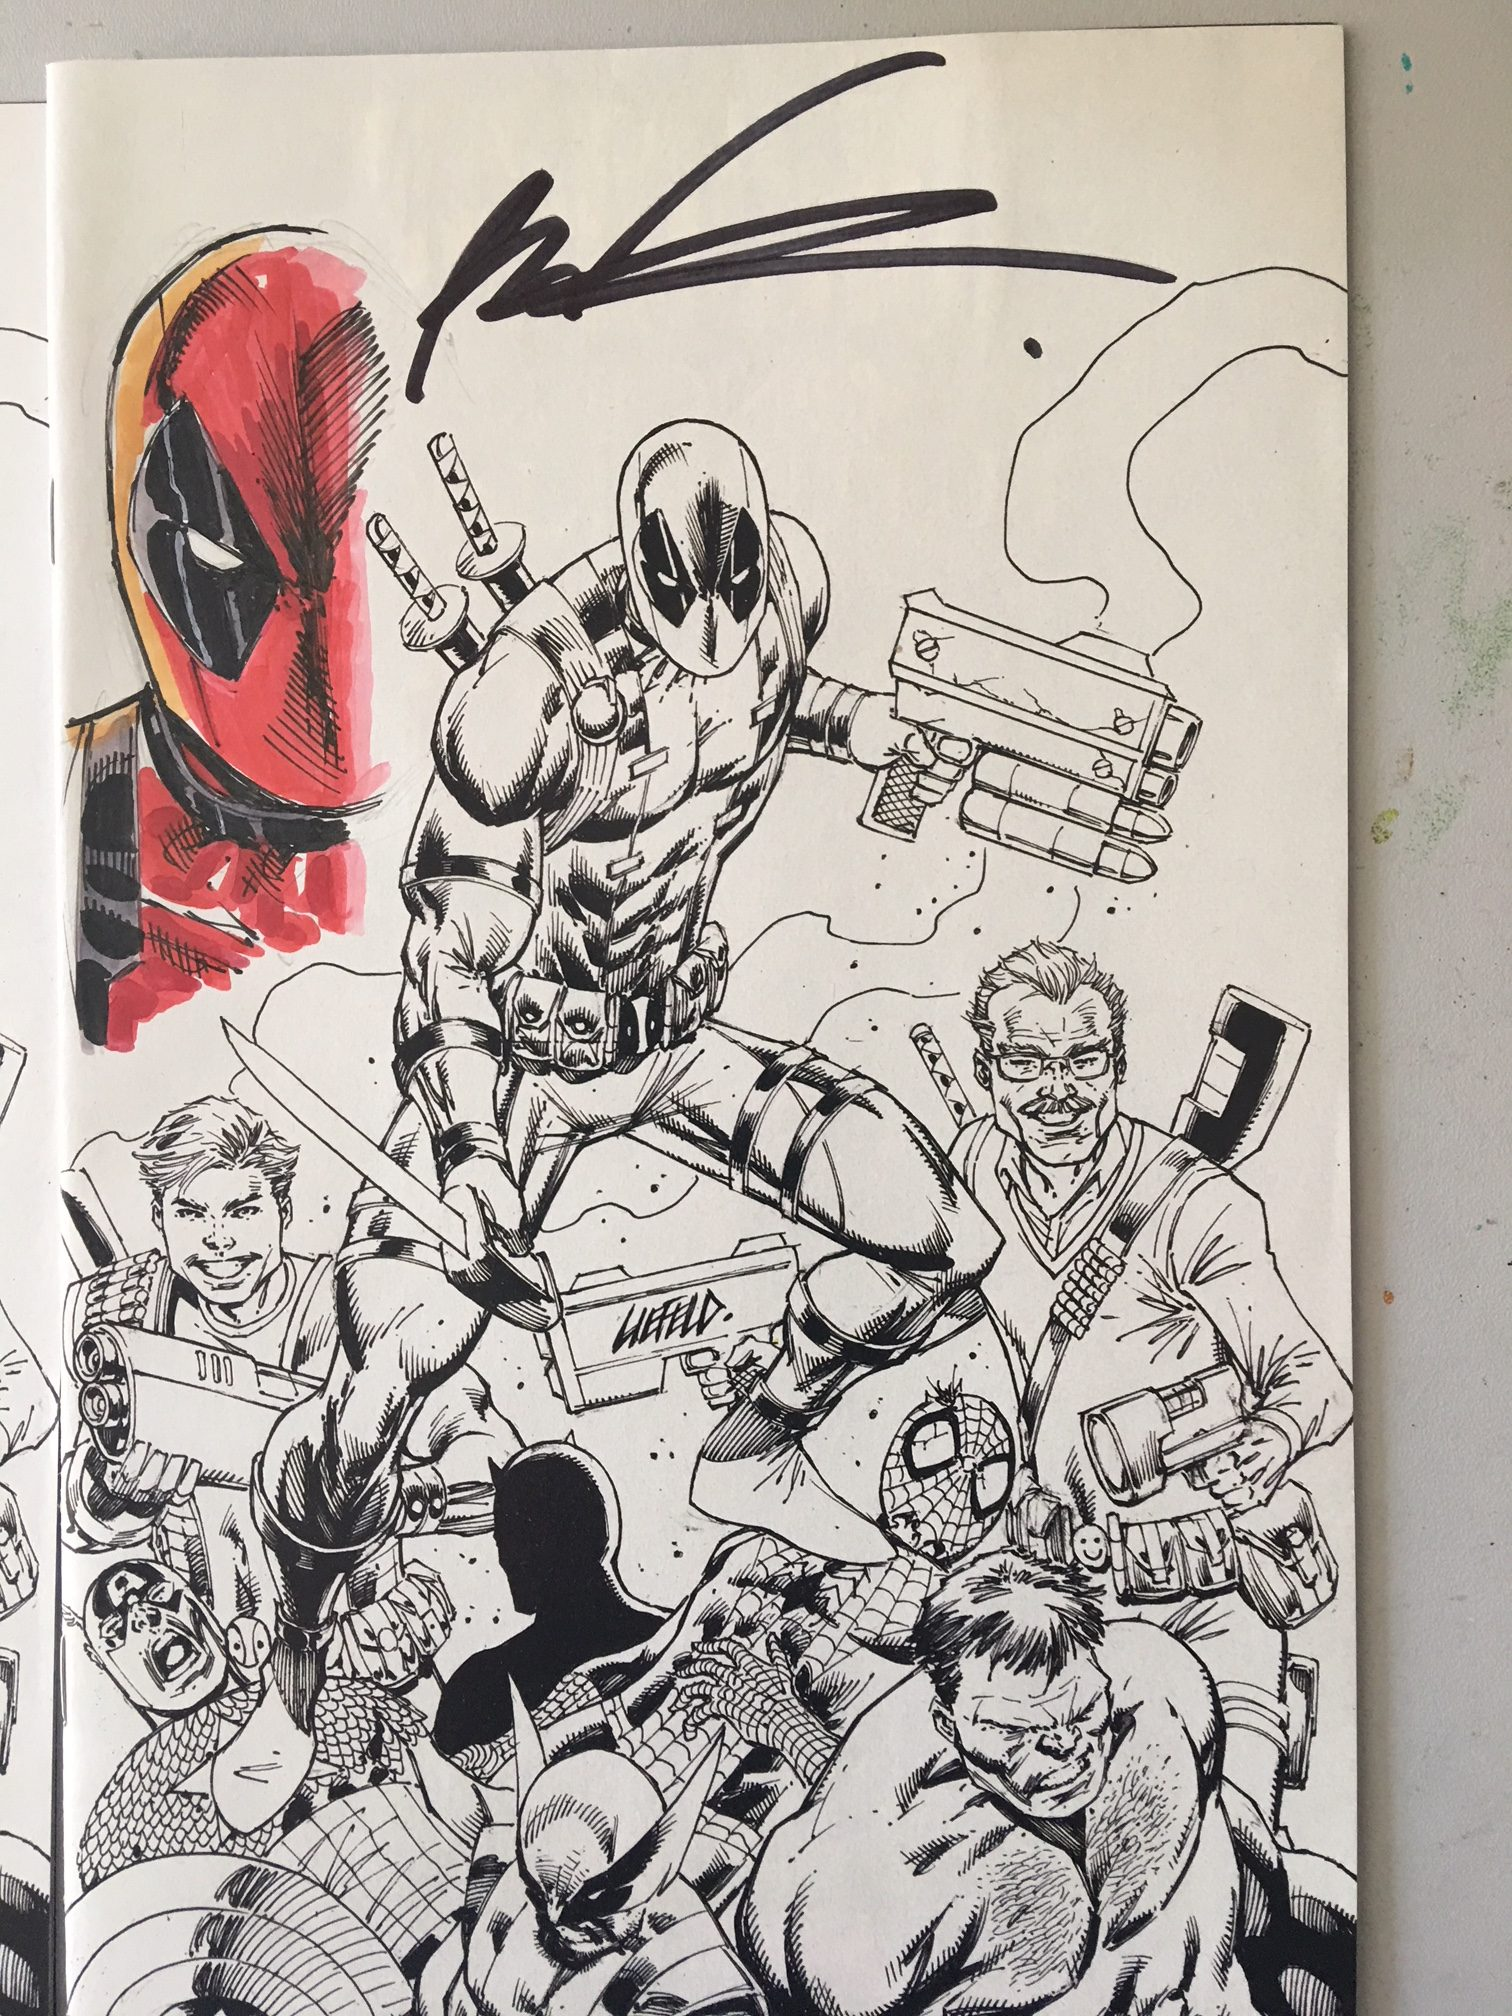 Deadpool Kills The Marvel Universe Again #1 -Original Liefeld Remarque's.